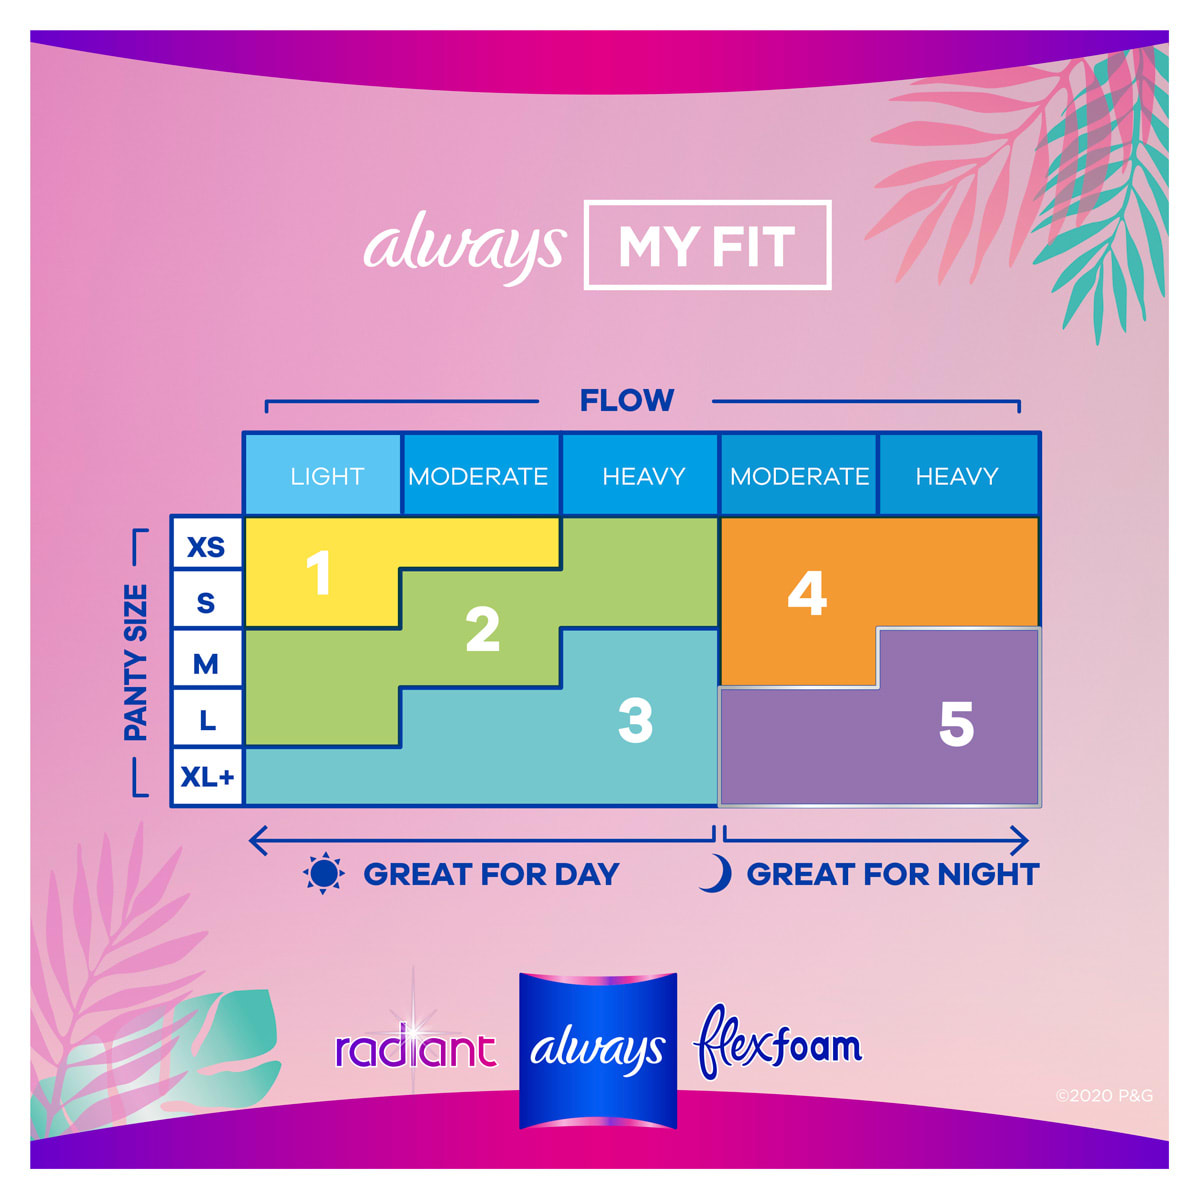 Always Radiant with FlexFoam My Fit chart